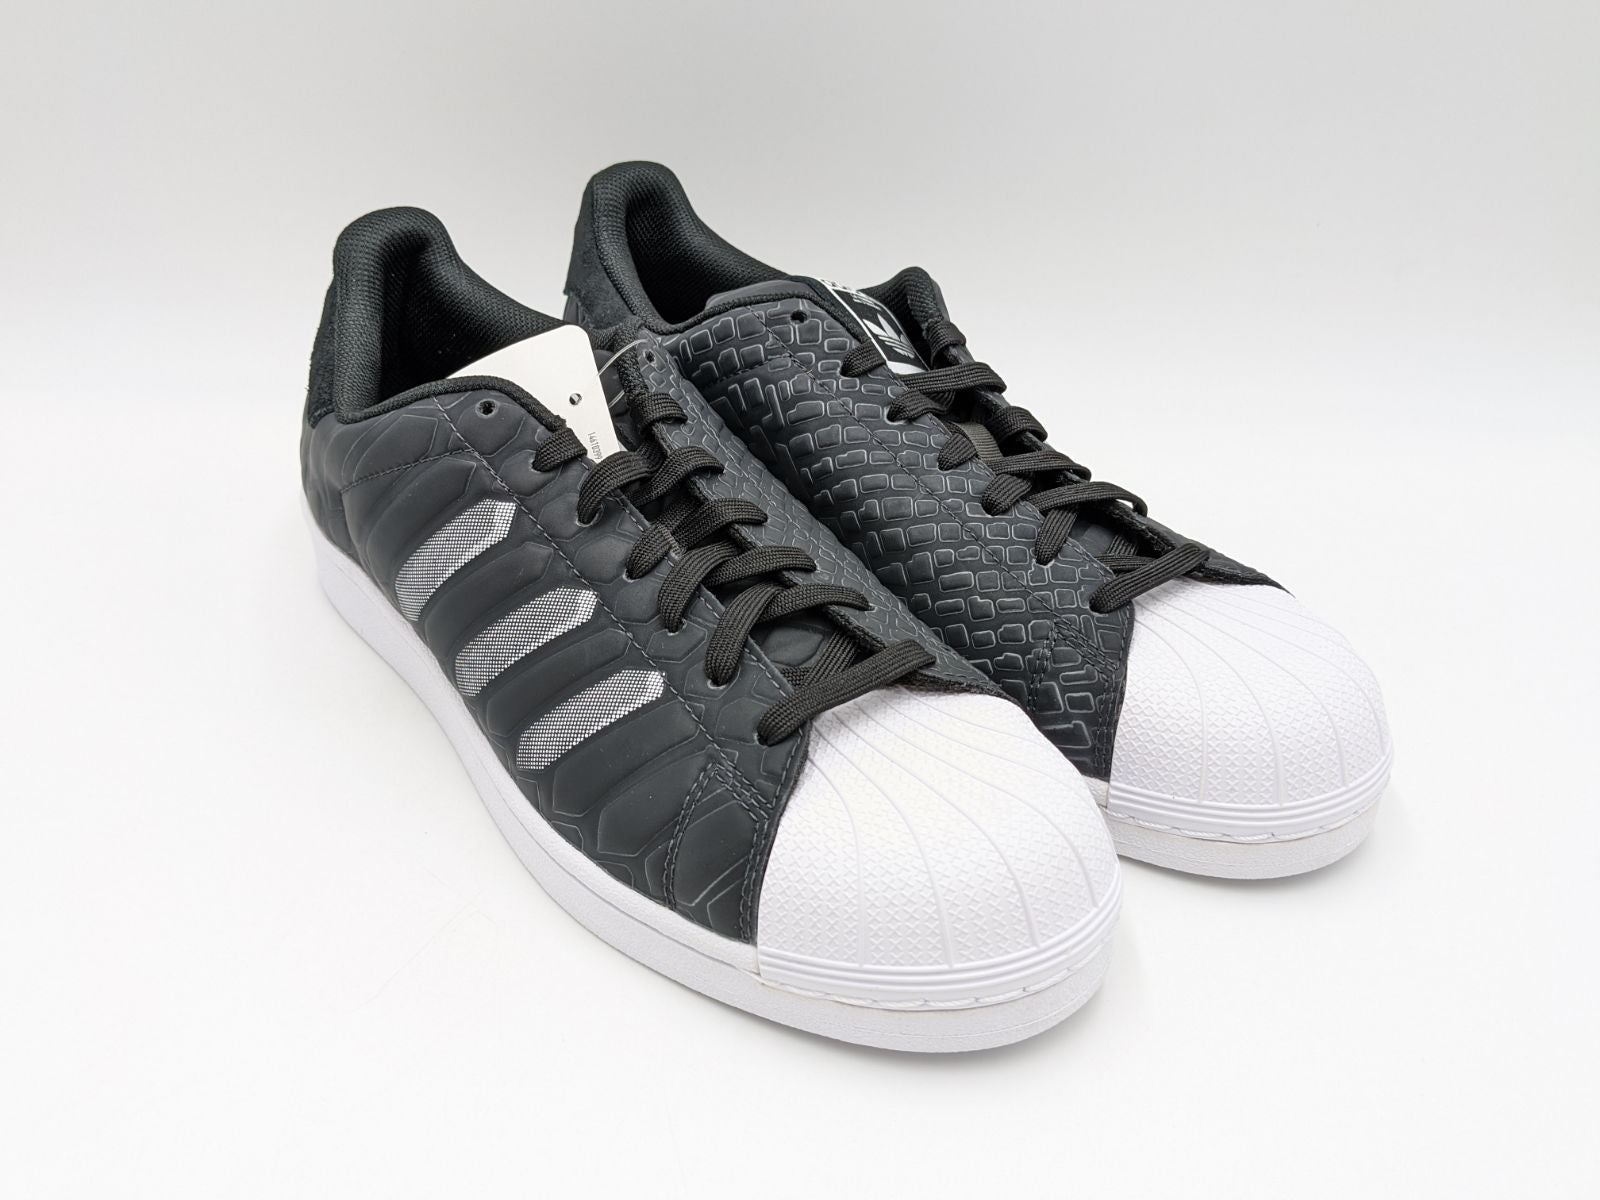 Adidas Originals Superstar CTXM